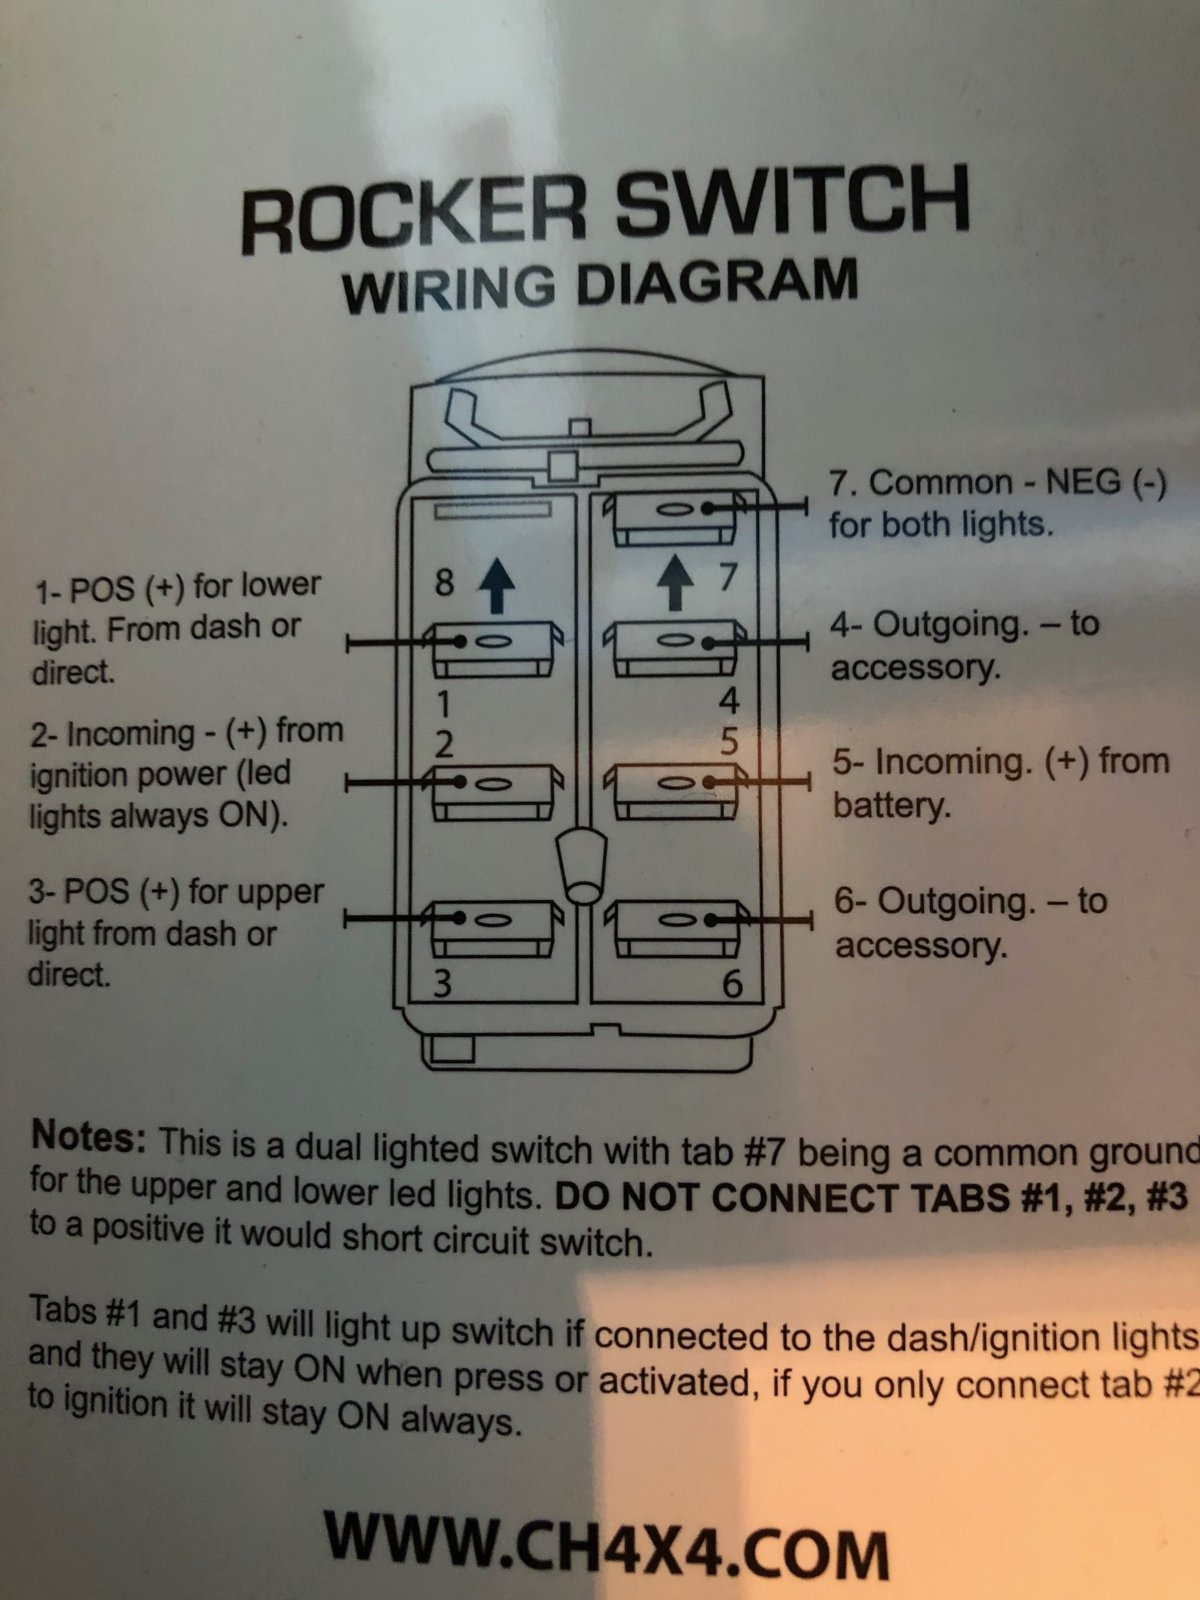 3 pin rocker switch wiring diagram vga cable winch jeep wrangler tj forum